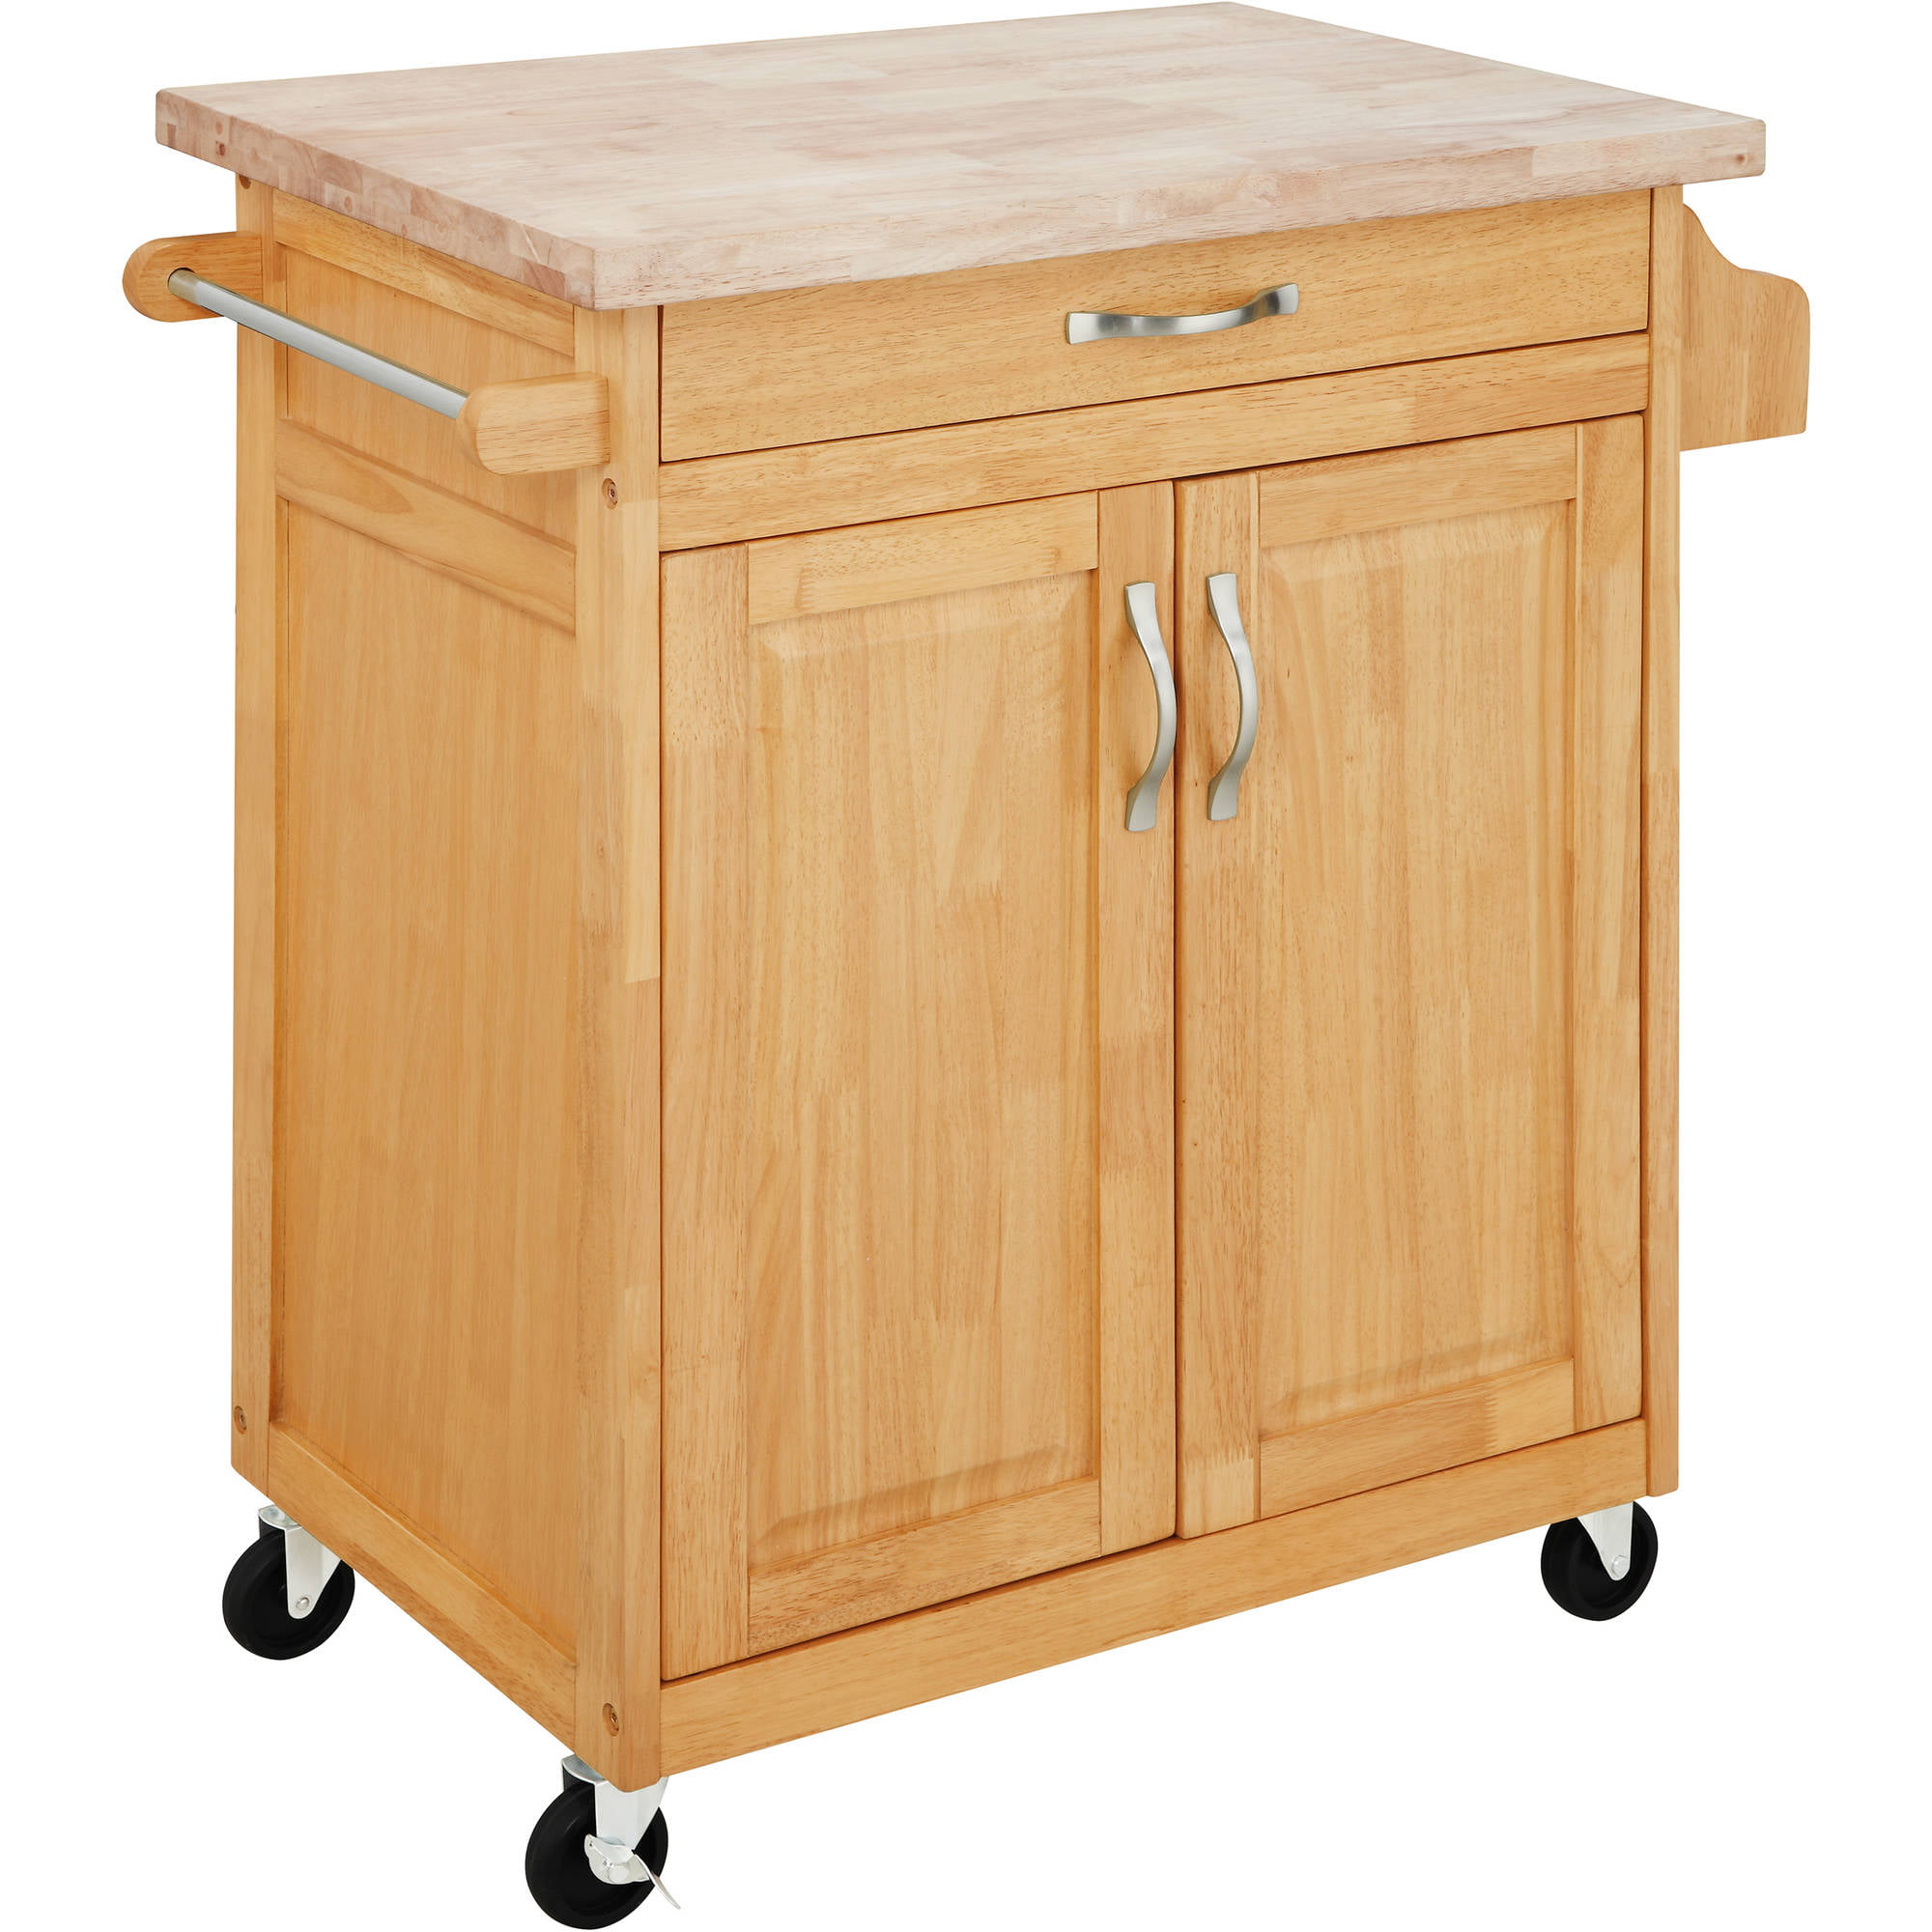 mainstays kitchen island cart multiple finishes mainstays kitchen island cart finishes ebay 9721